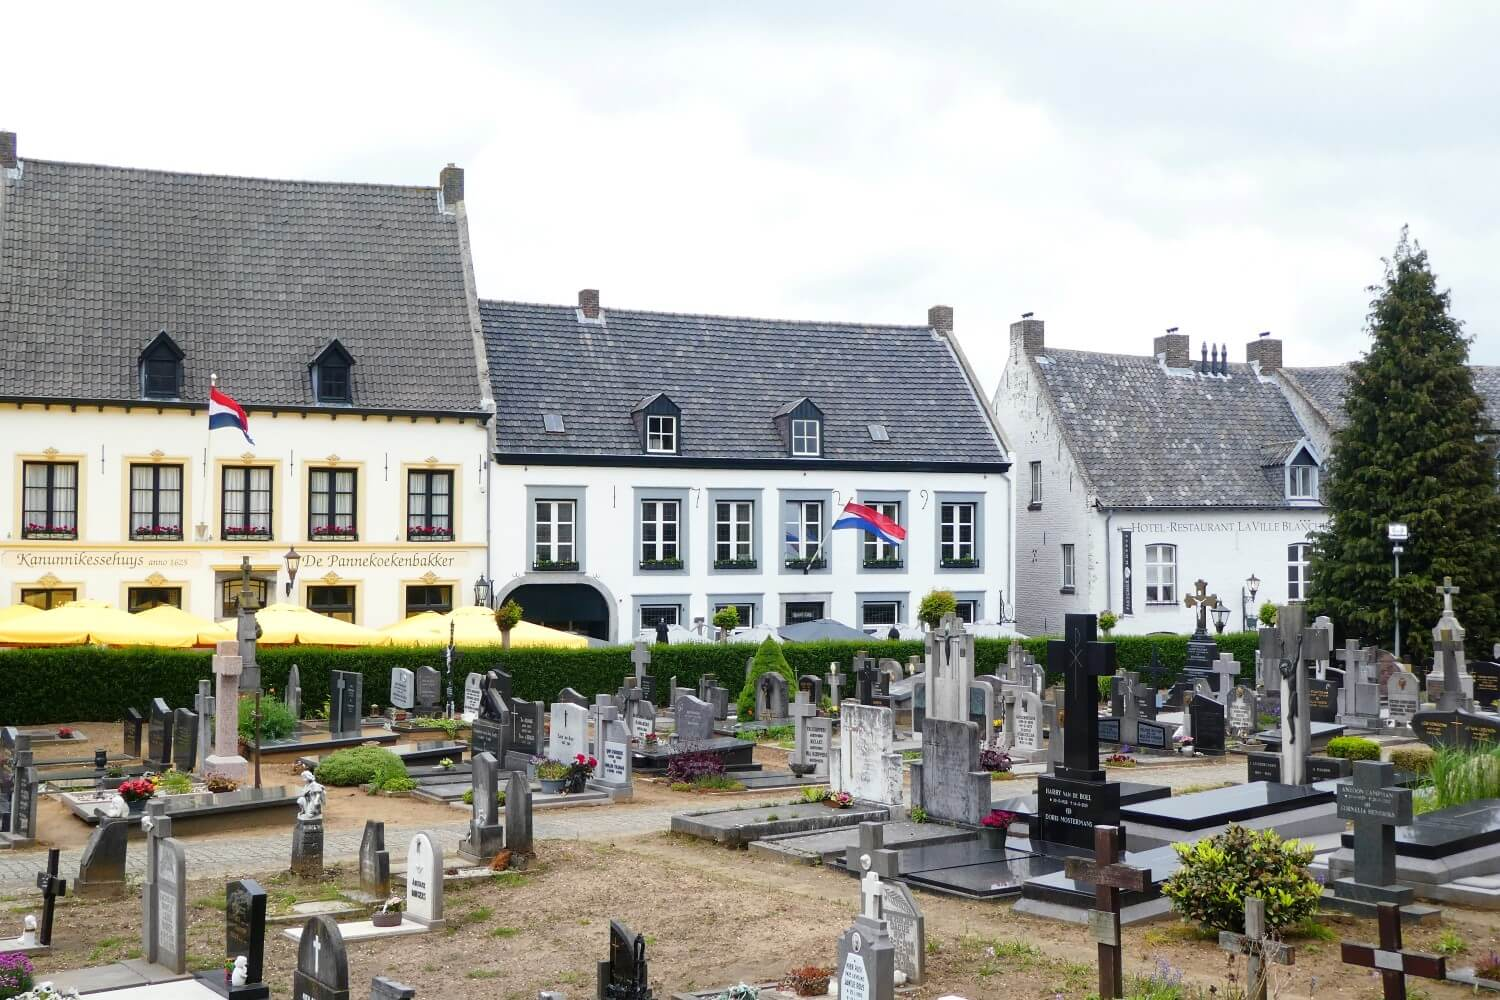 Cemetery and restaurants in the White Town